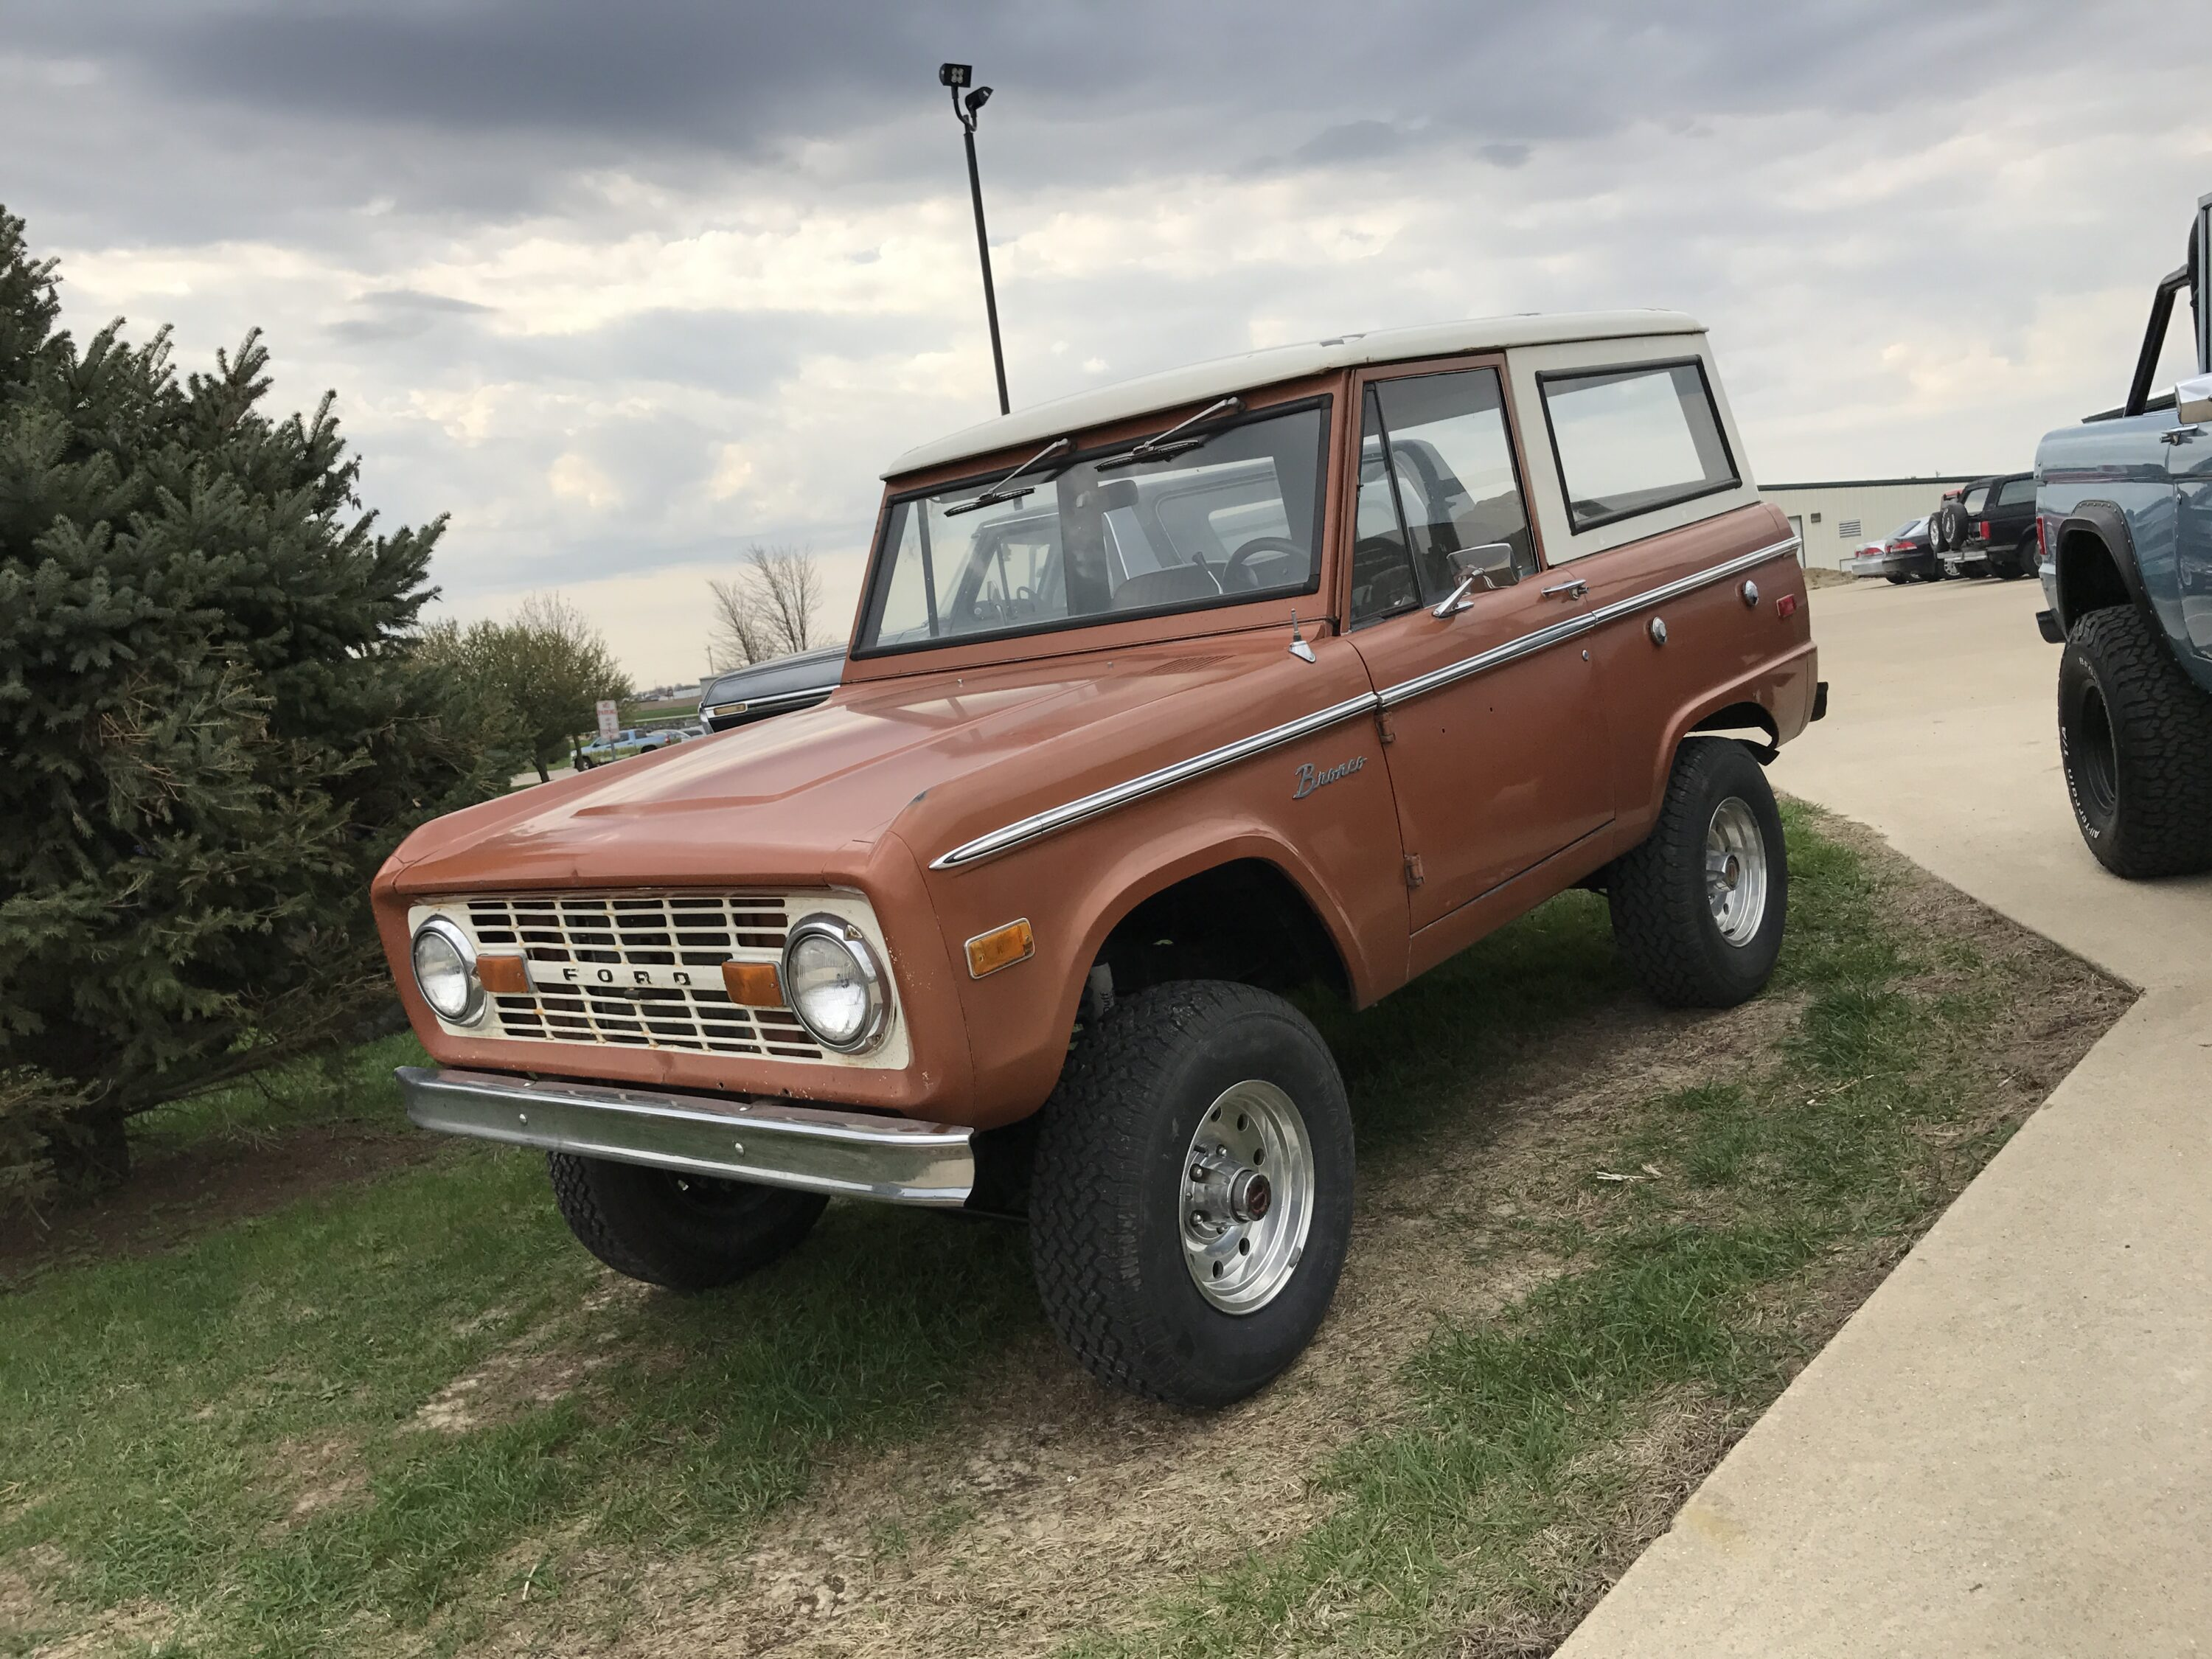 1973 Ford Bronco Hot Ginger Metallic LUBR